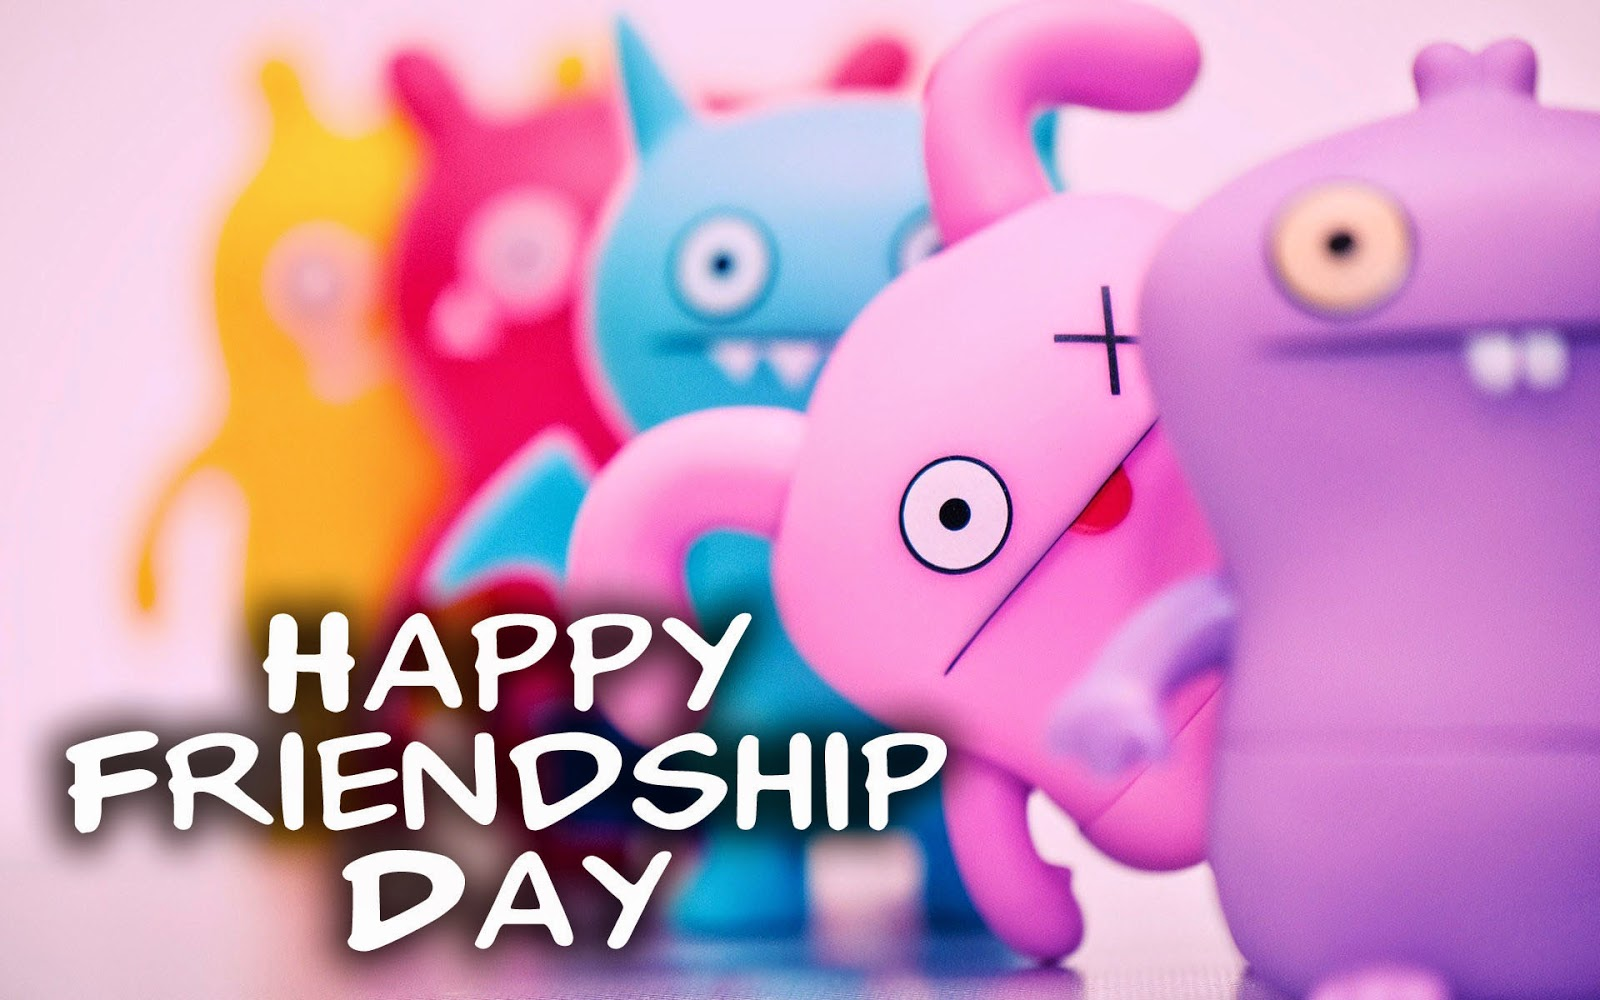 Happy Friendship Day Images Facebook Cover Pics